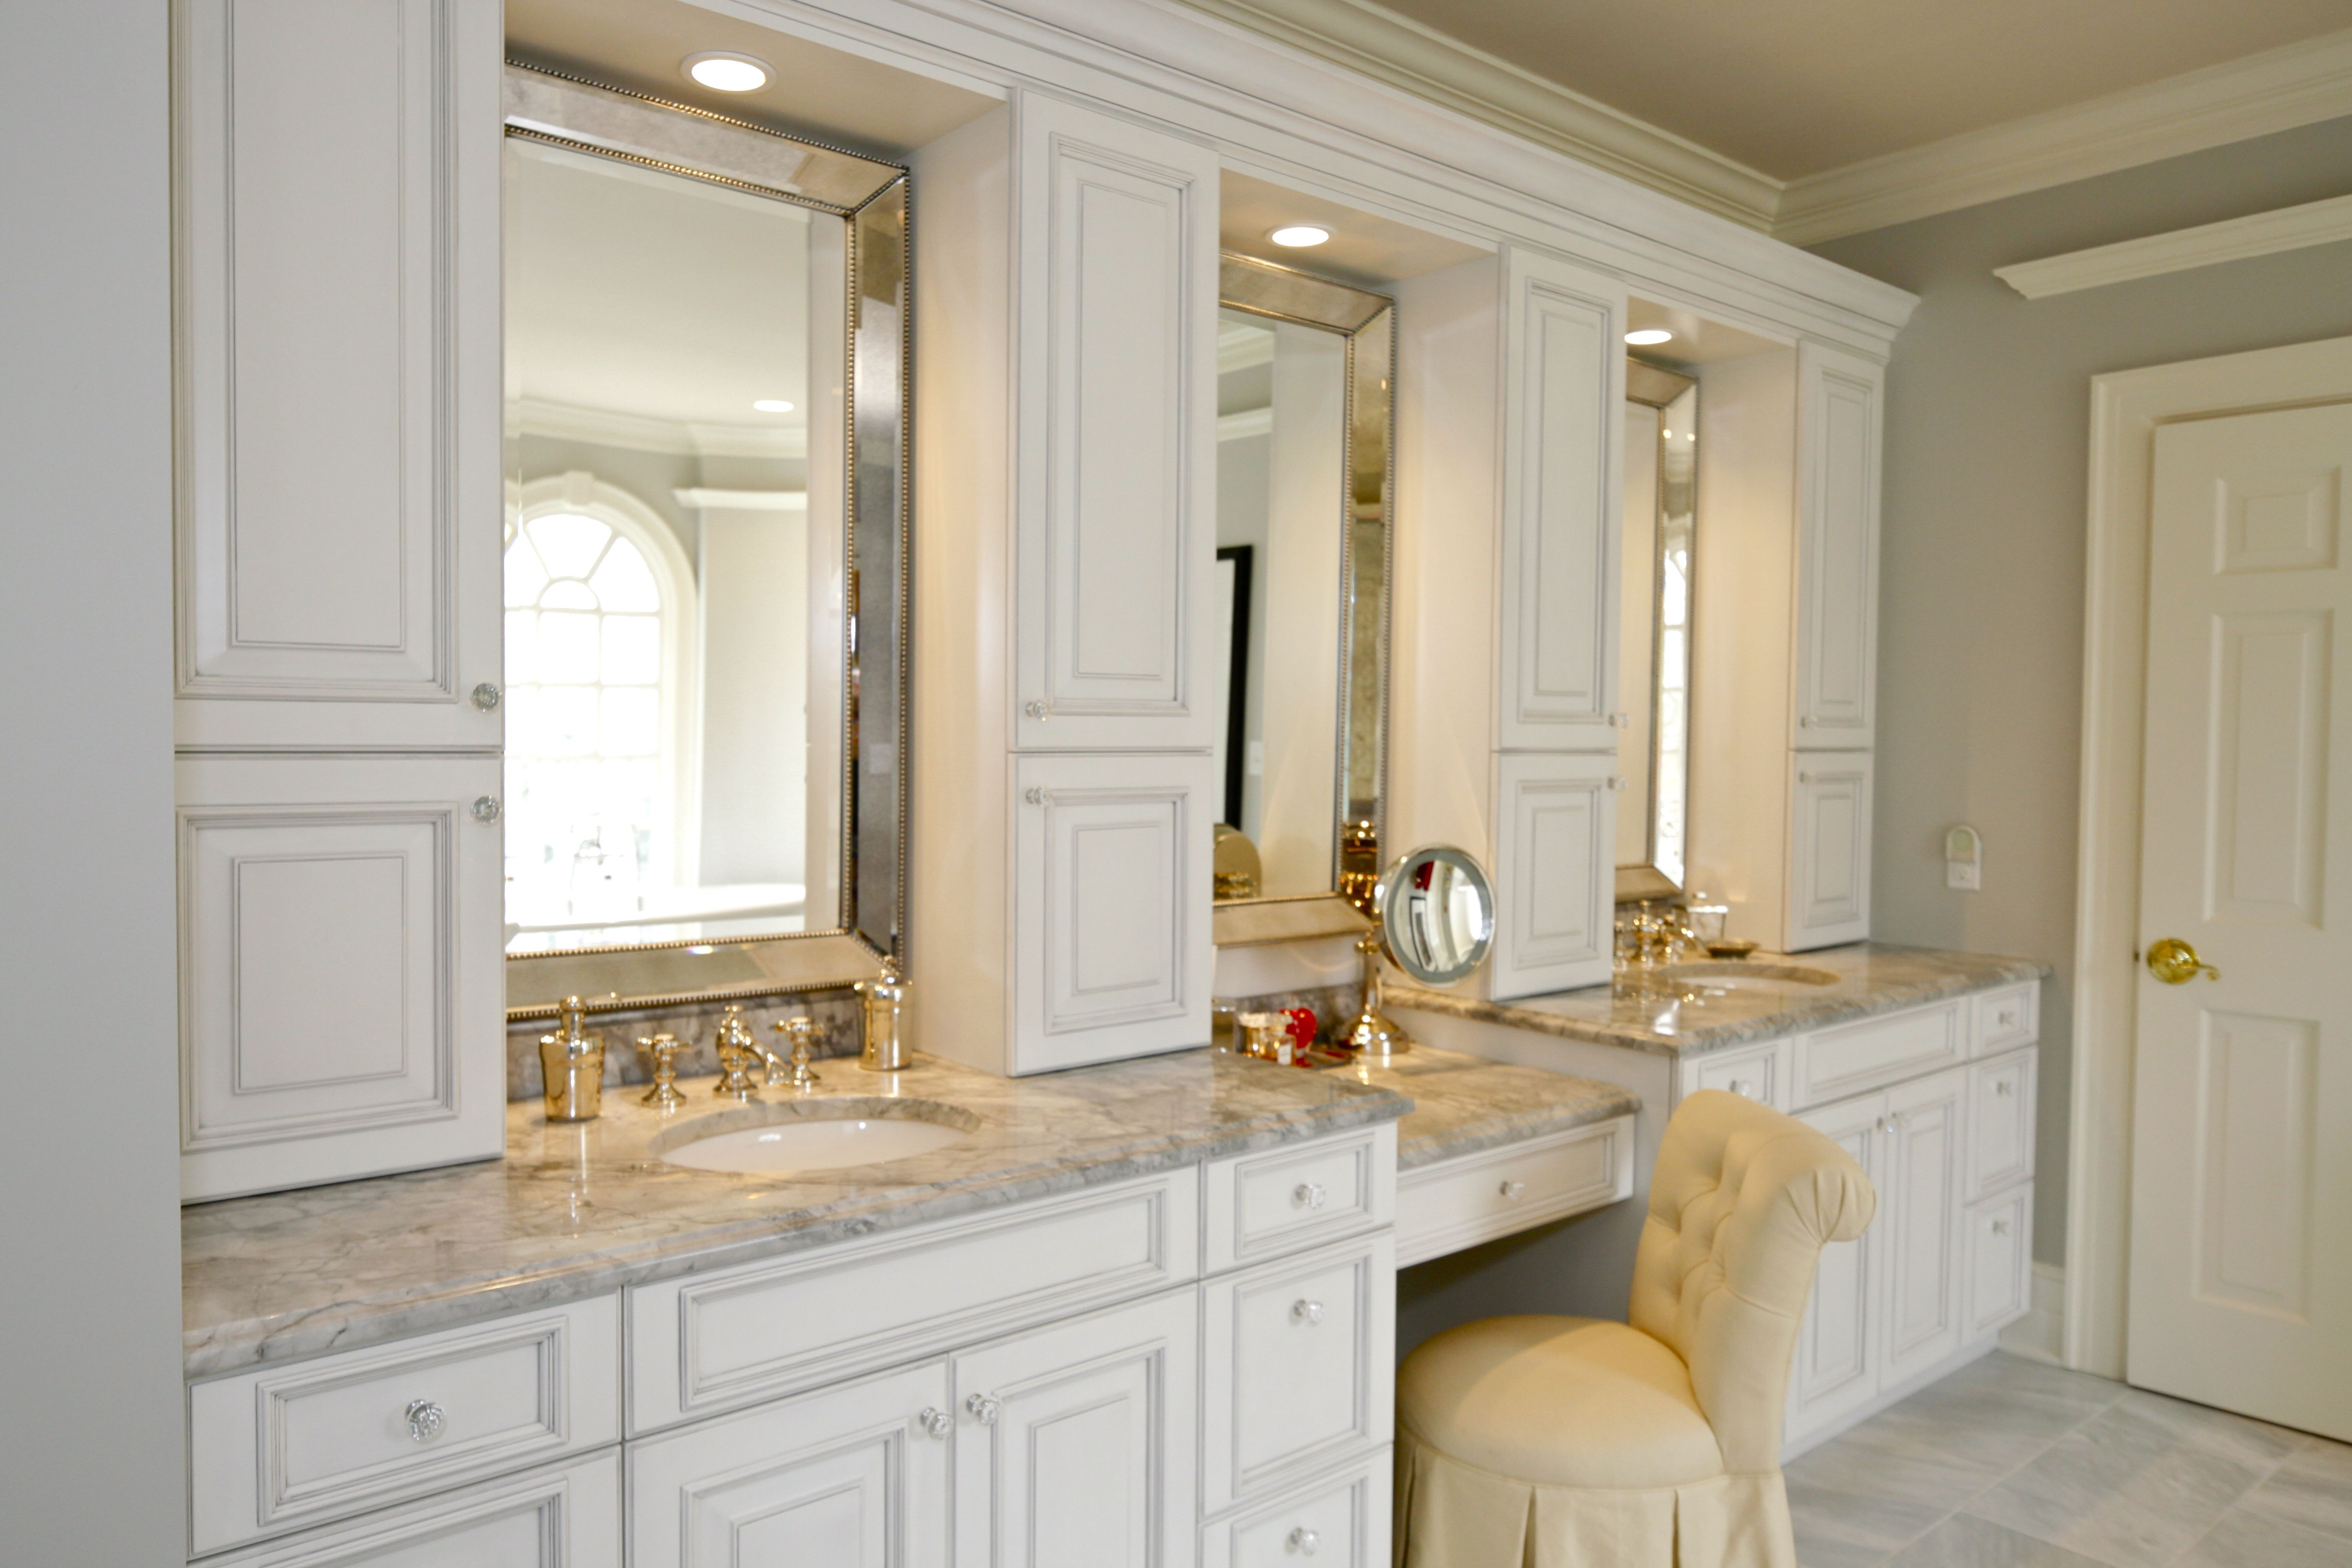 Holiday Kitchens Cabinets In Nordic White With A Matte Pewter Wash Featuring A Newcastle Door Style Dream Baths Colum Bathrooms Remodel Dream Bath Bathroom